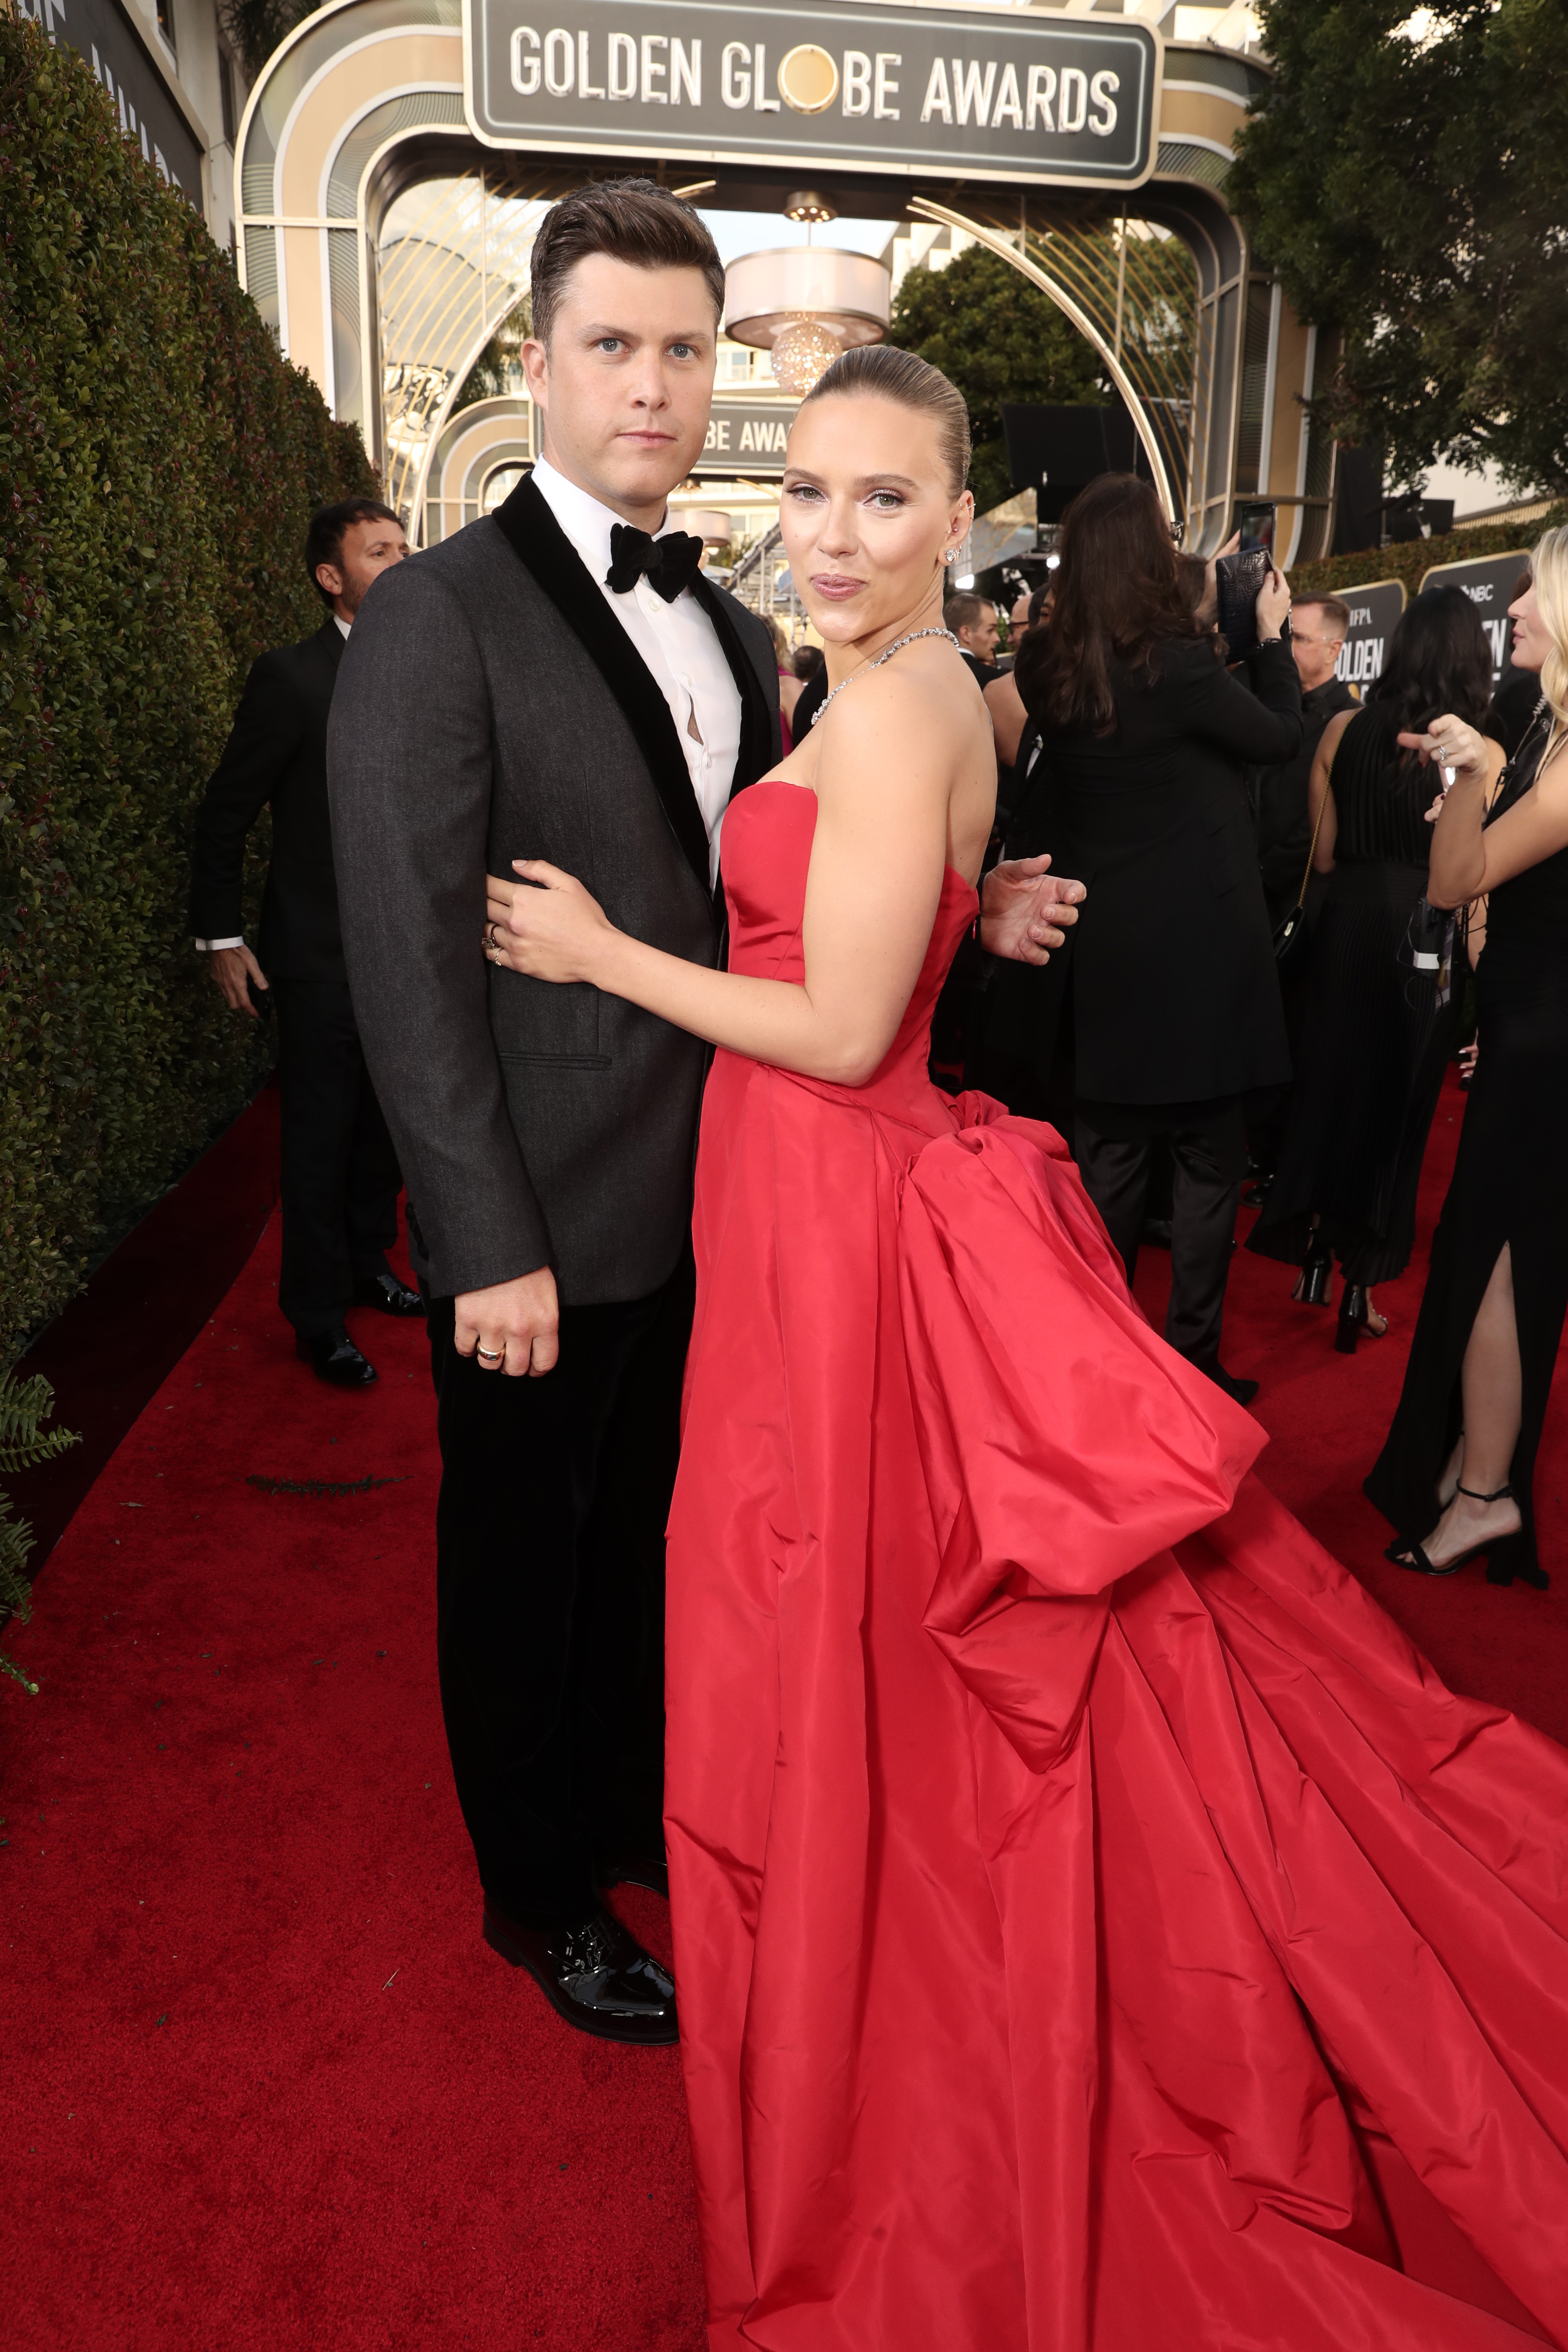 BEVERLY HILLS, CALIFORNIA - JANUARY 05: 77th ANNUAL GOLDEN GLOBE AWARDS -- Pictured: (l-r) Colin Jost and Scarlett Johansson arrive to the 77th Annual Golden Globe Awards held at the Beverly Hilton Hotel on January 5, 2020. -- (Photo by: Todd Williamson/NBC/NBCU Photo Bank via Getty Images)